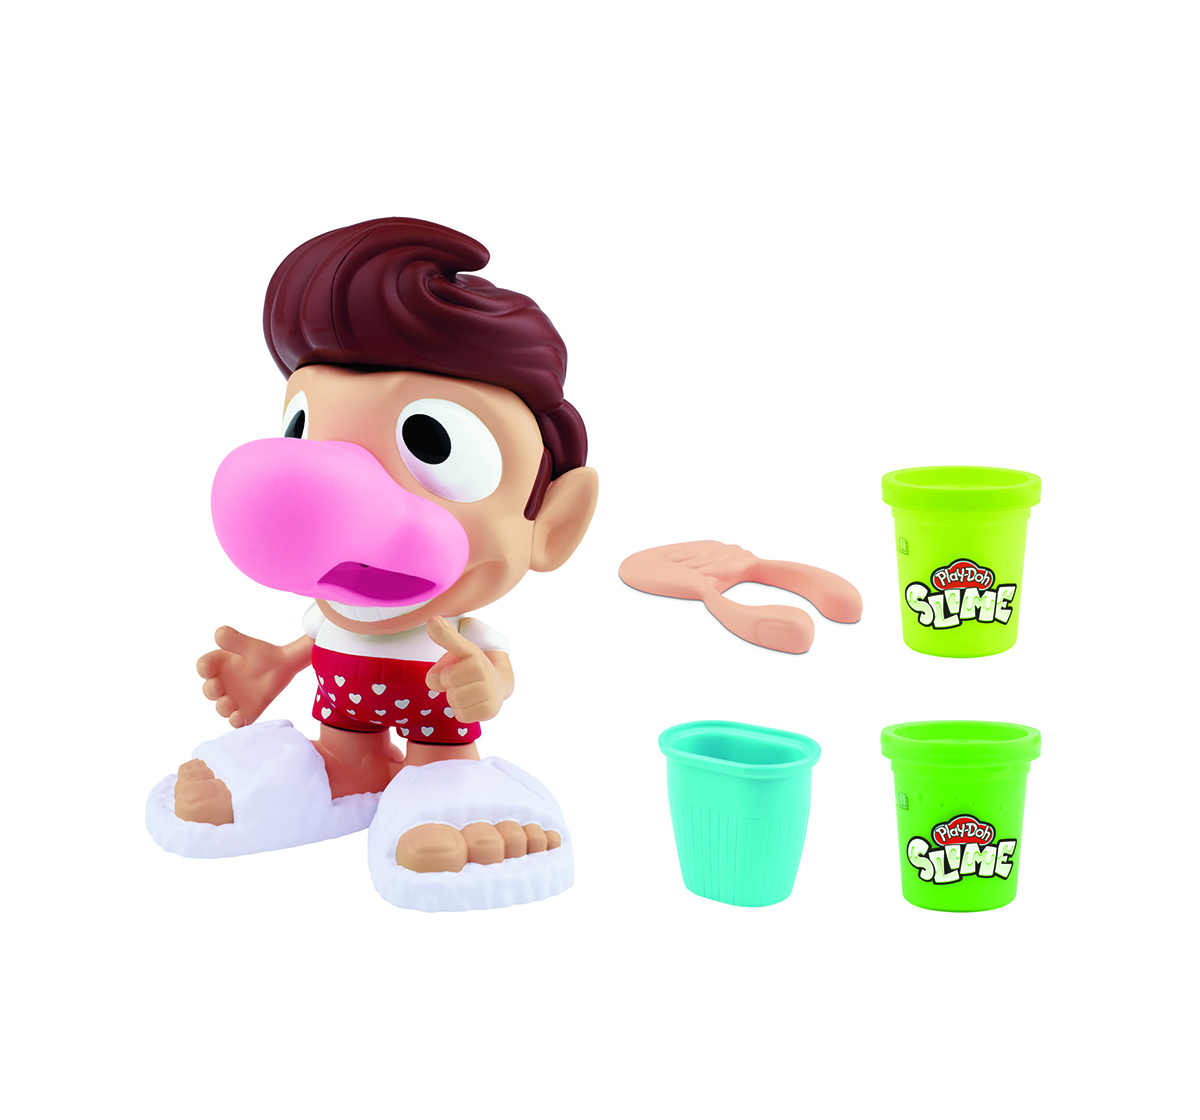 Play-Doh   Play-Doh Slime Snotty Scotty Playset with 2 Cans of Slime Snot  Clay & Dough for Kids age 3Y+